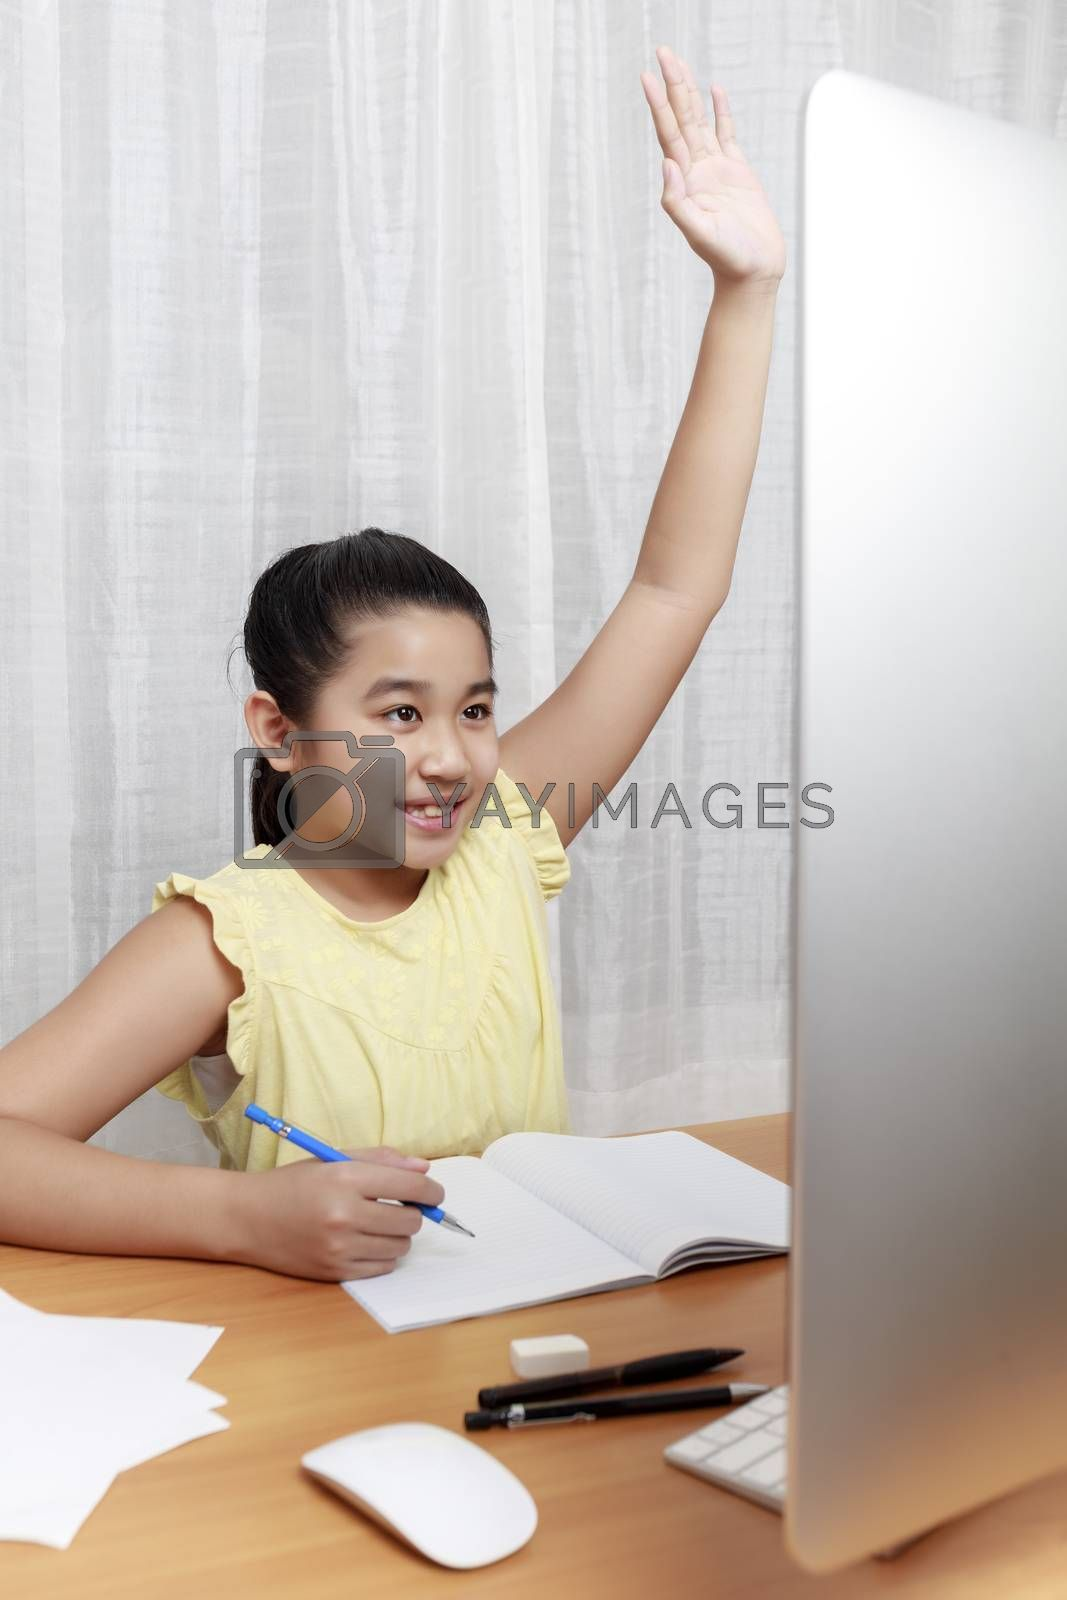 Asian little girl is studying online via the internet  sitting and writing in living room at home. Asia children writing with pencil on paper notebook online learning at home, learn from home concept